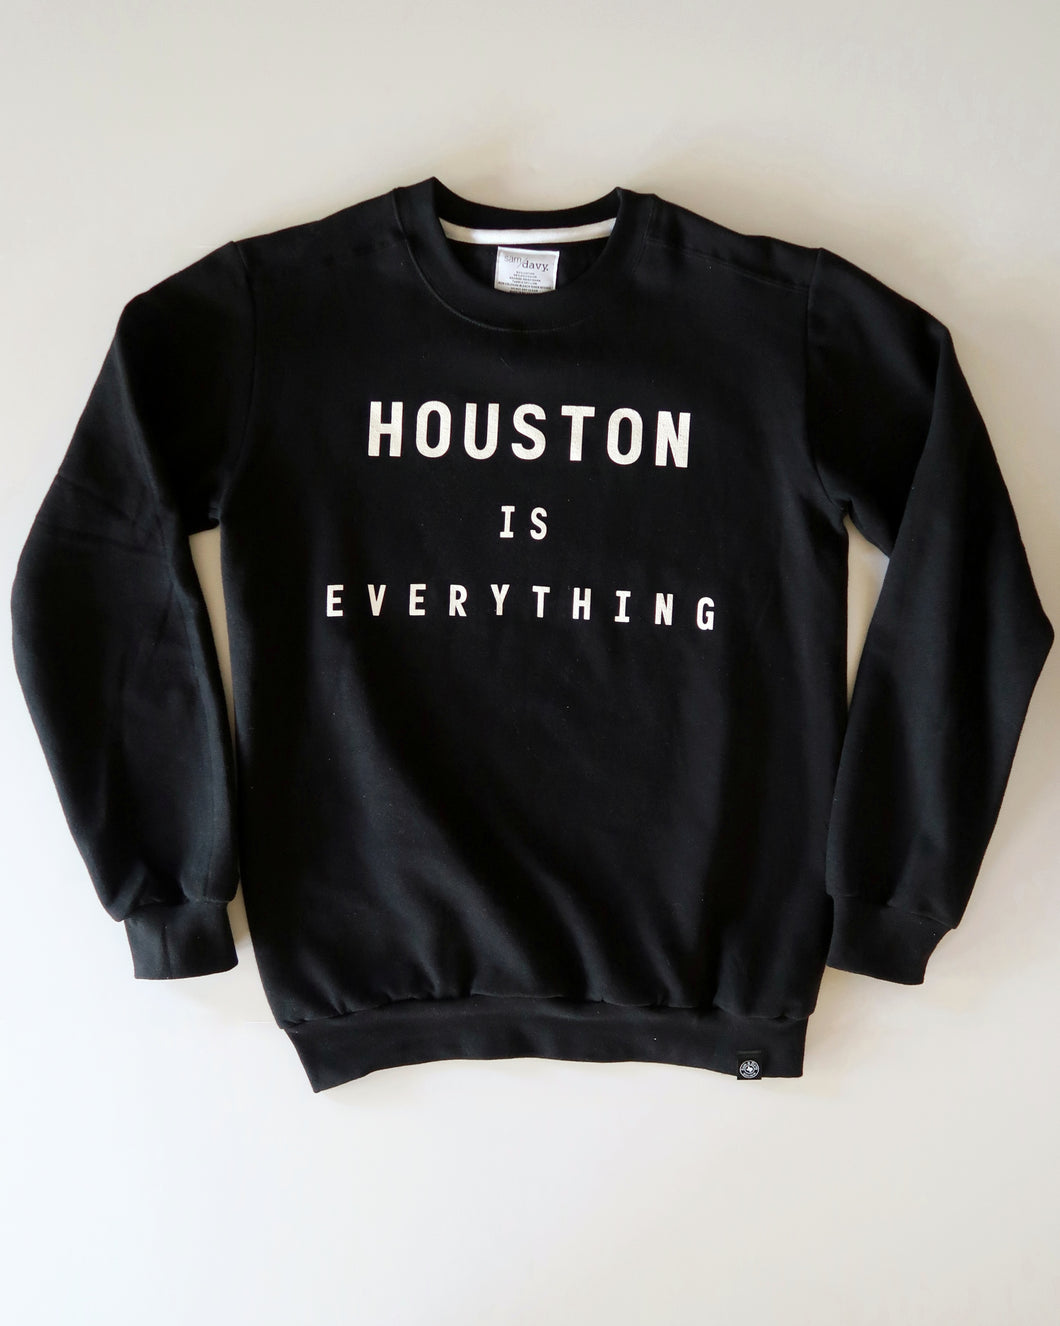 The Houston is Everything Crewneck (Unisex Black/White)